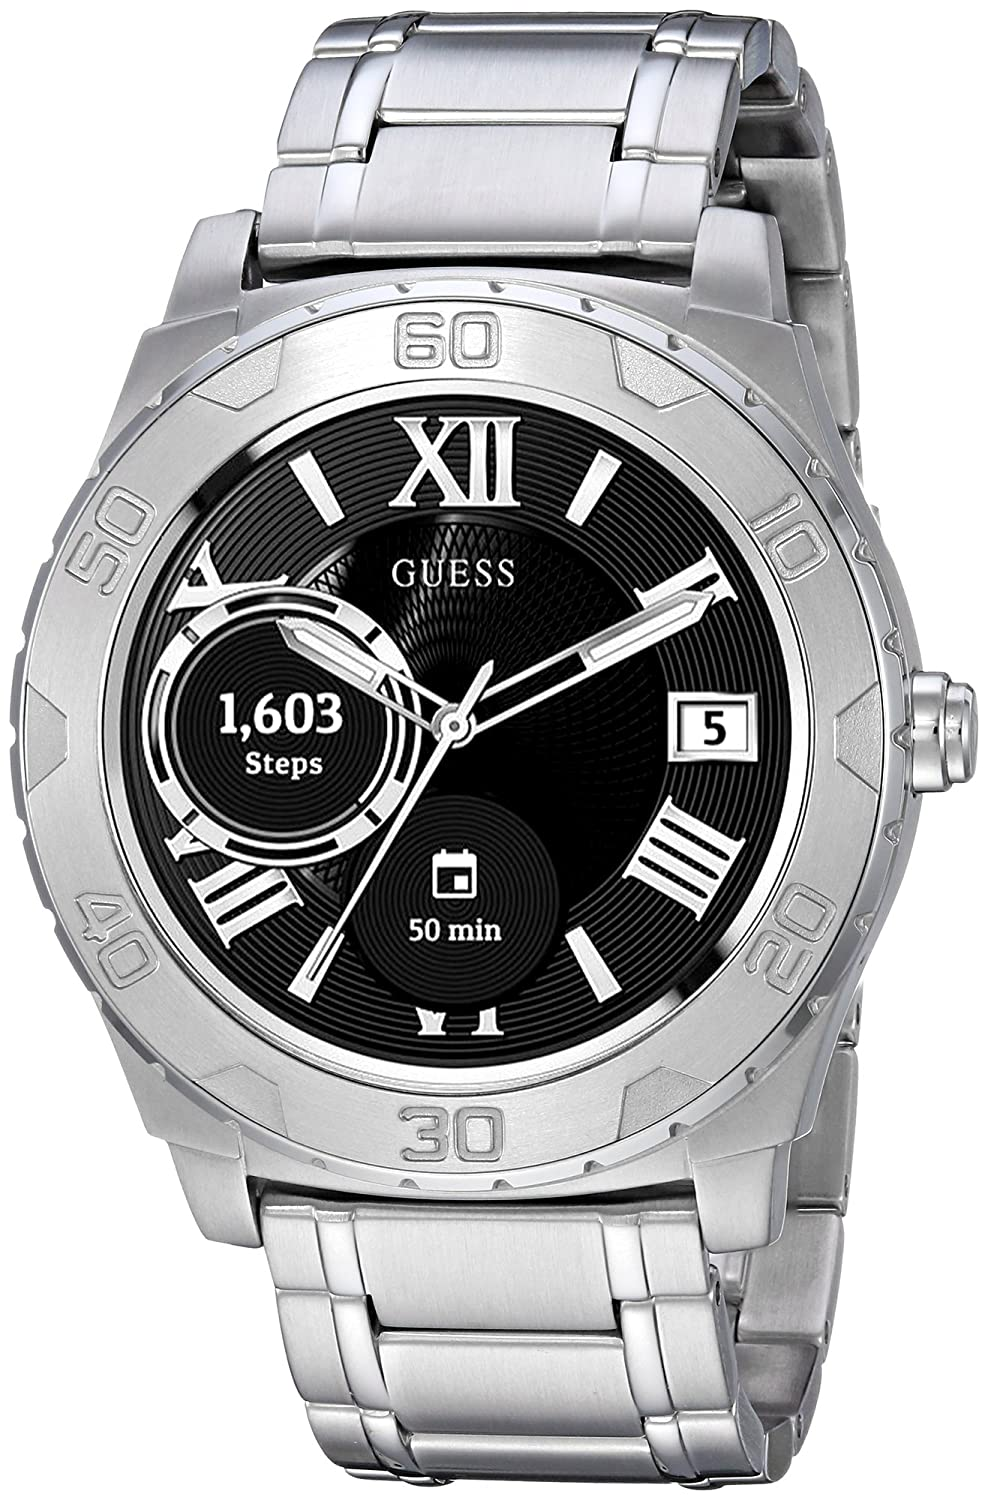 GUESS Mens Stainless Steel Android Wear Touch Screen Bracelet Watch